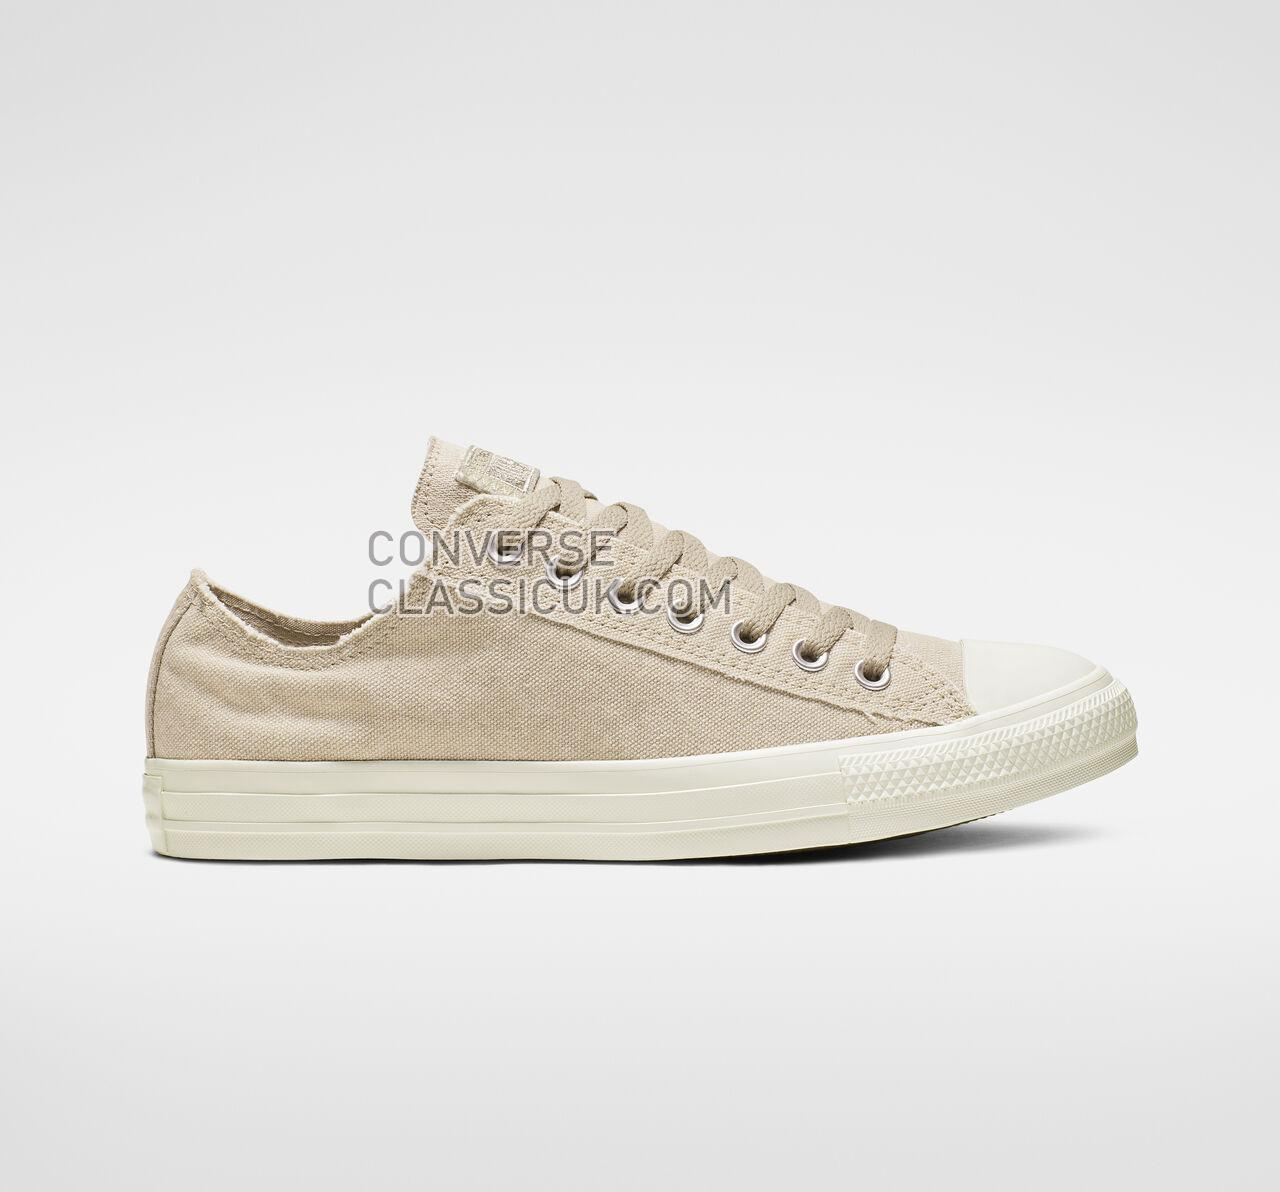 Converse Chuck Taylor All Star Washed Out Low Top Mens Womens Unisex 164098F Papyrus/Egret/Egret Shoes